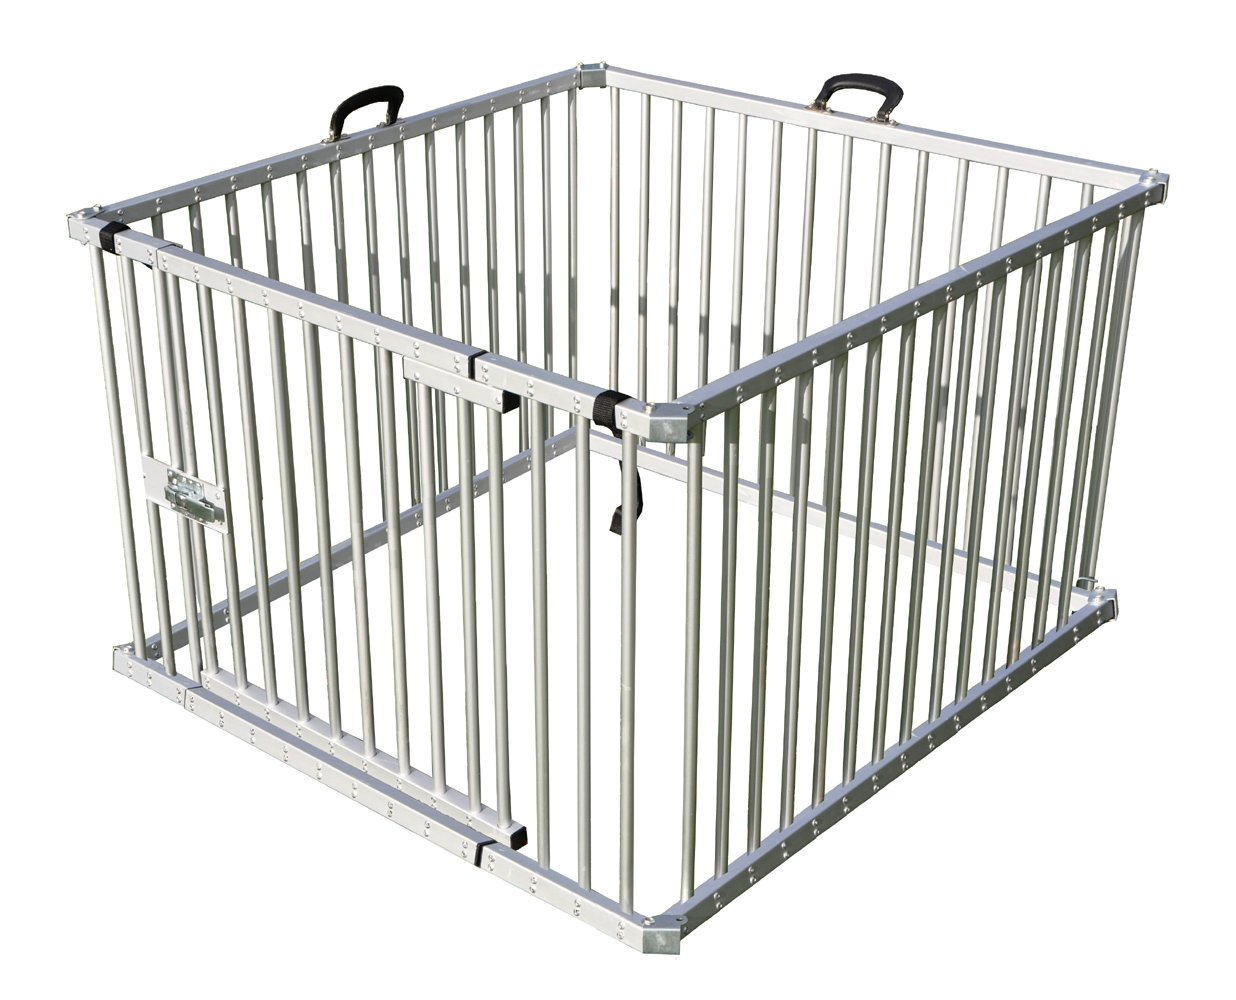 Cool Runners Secure Aluminum Portable Expandable Pet Enclosure 4 Sections (25''H x 36''L per Section) Lightweight & Collapsible